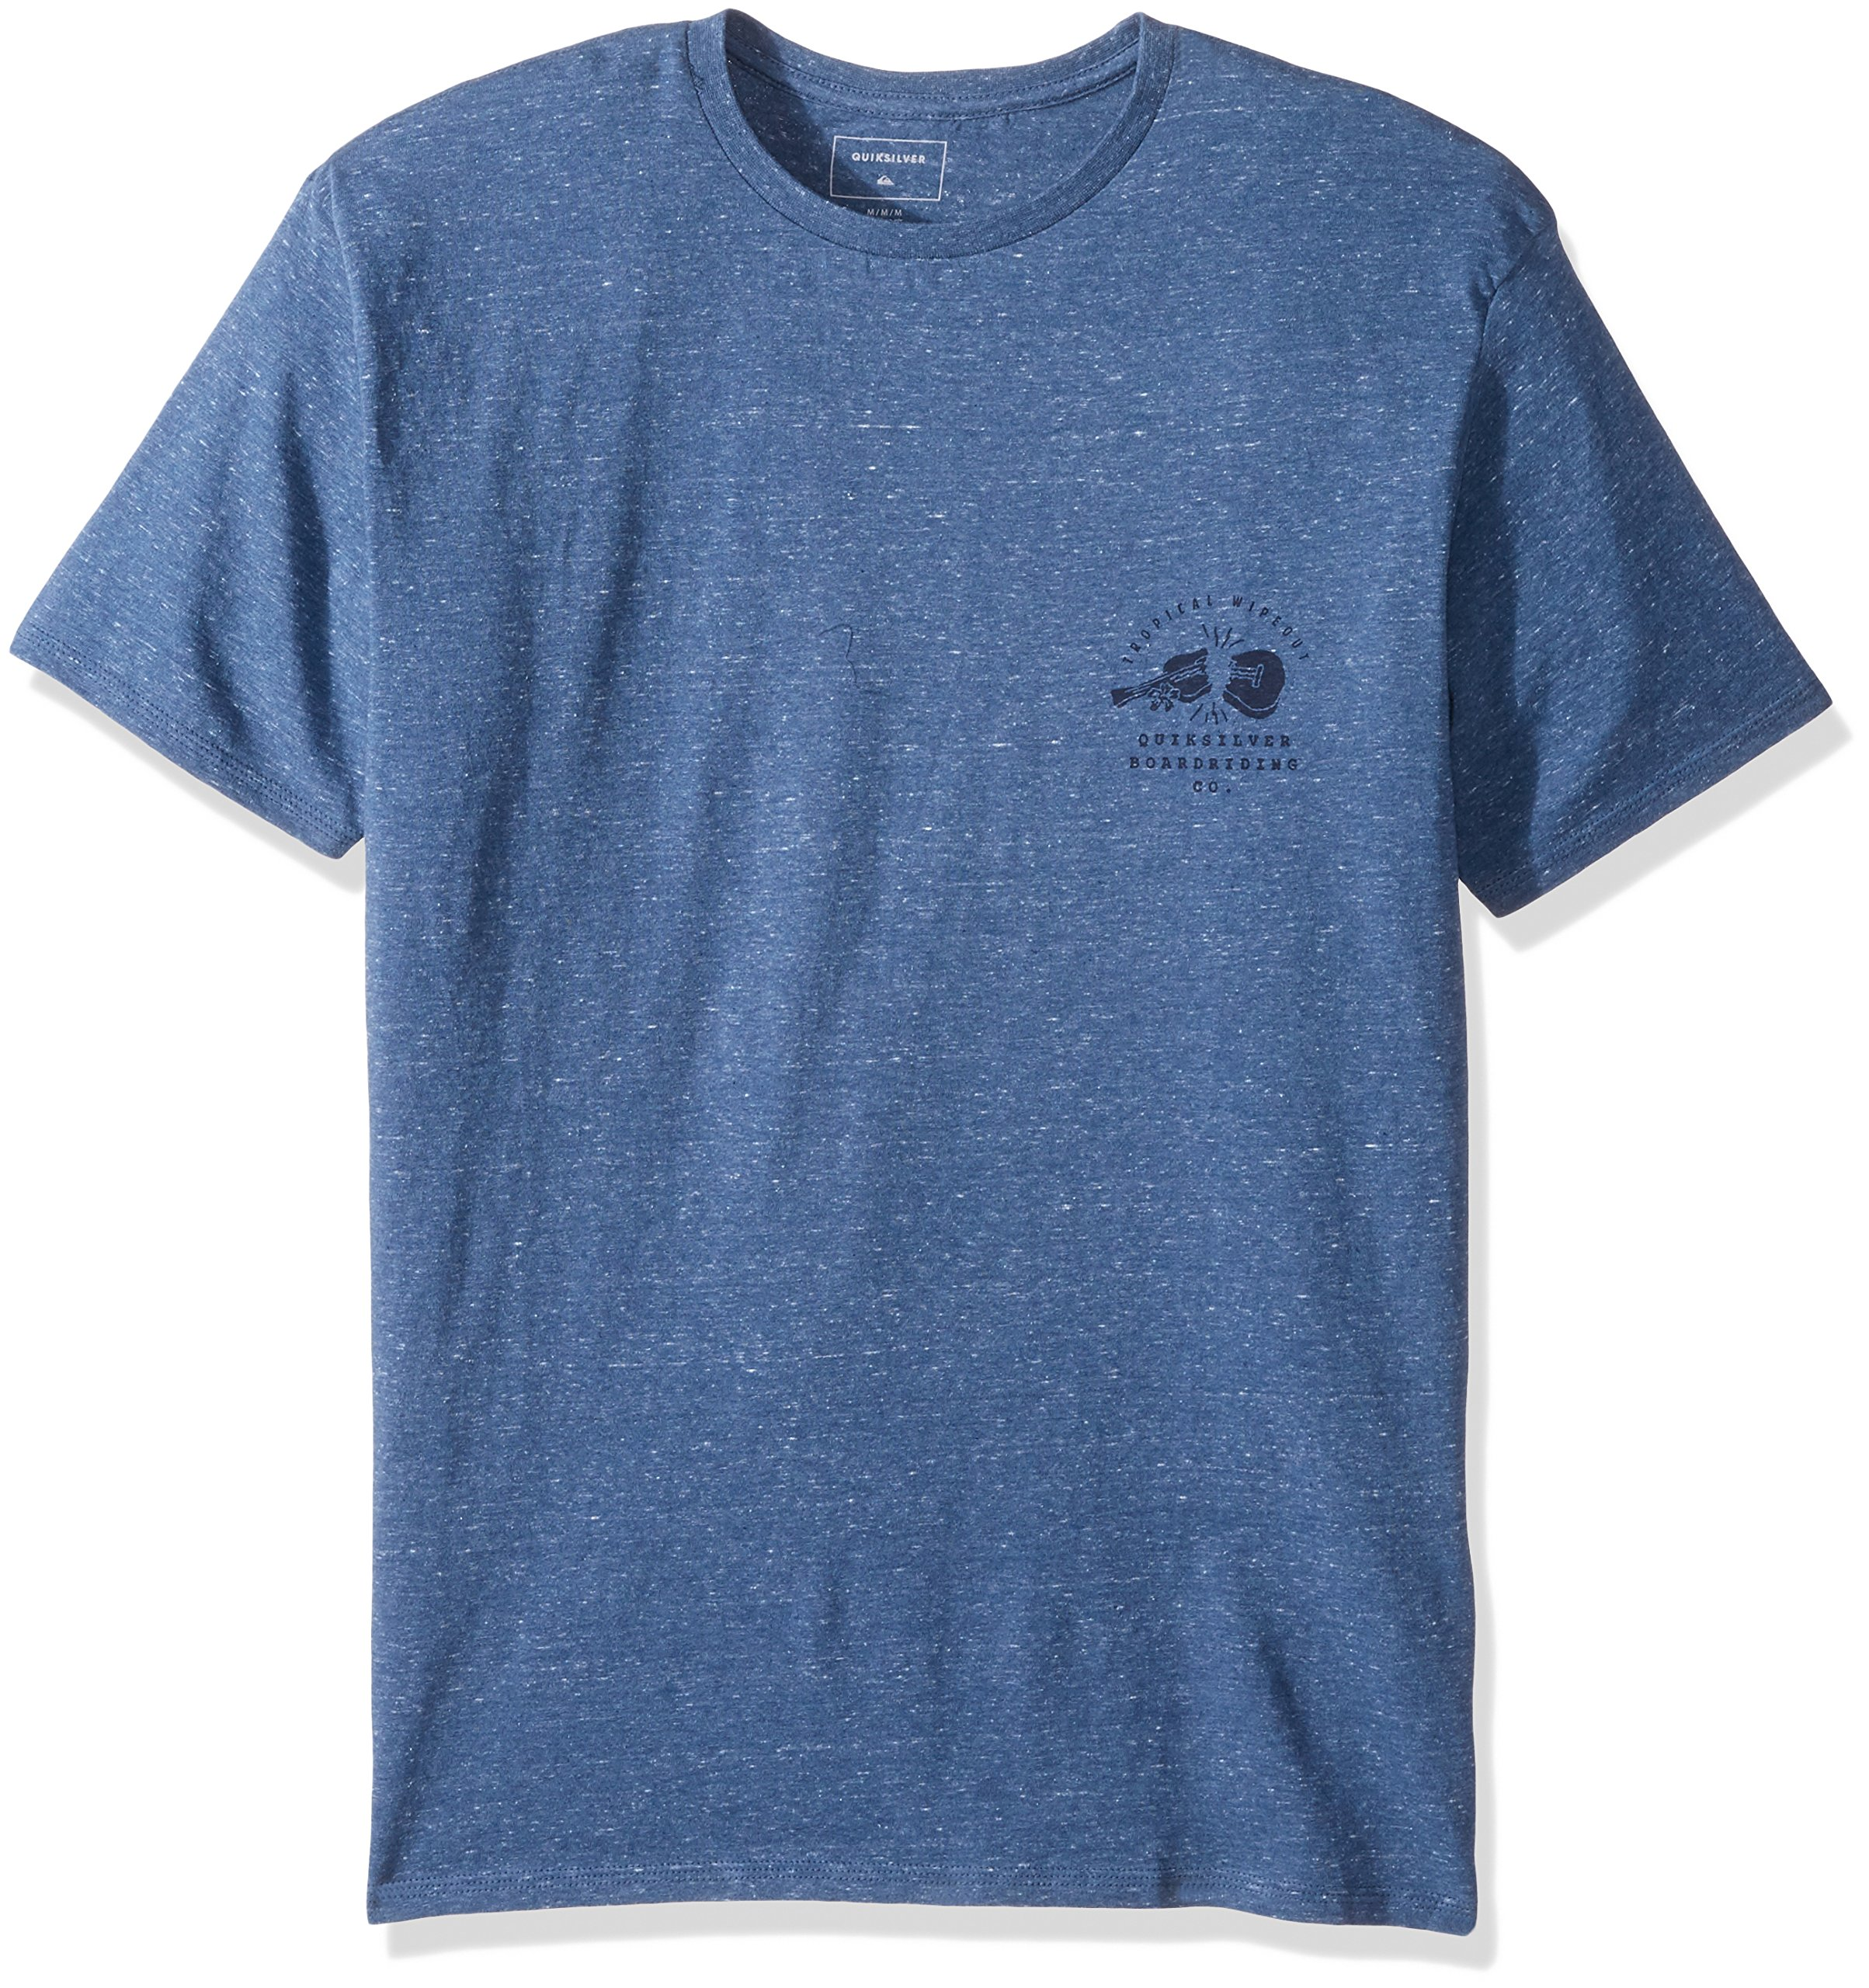 Quiksilver Men's Organic Long Lost Tee, Real Teal Heather, XL